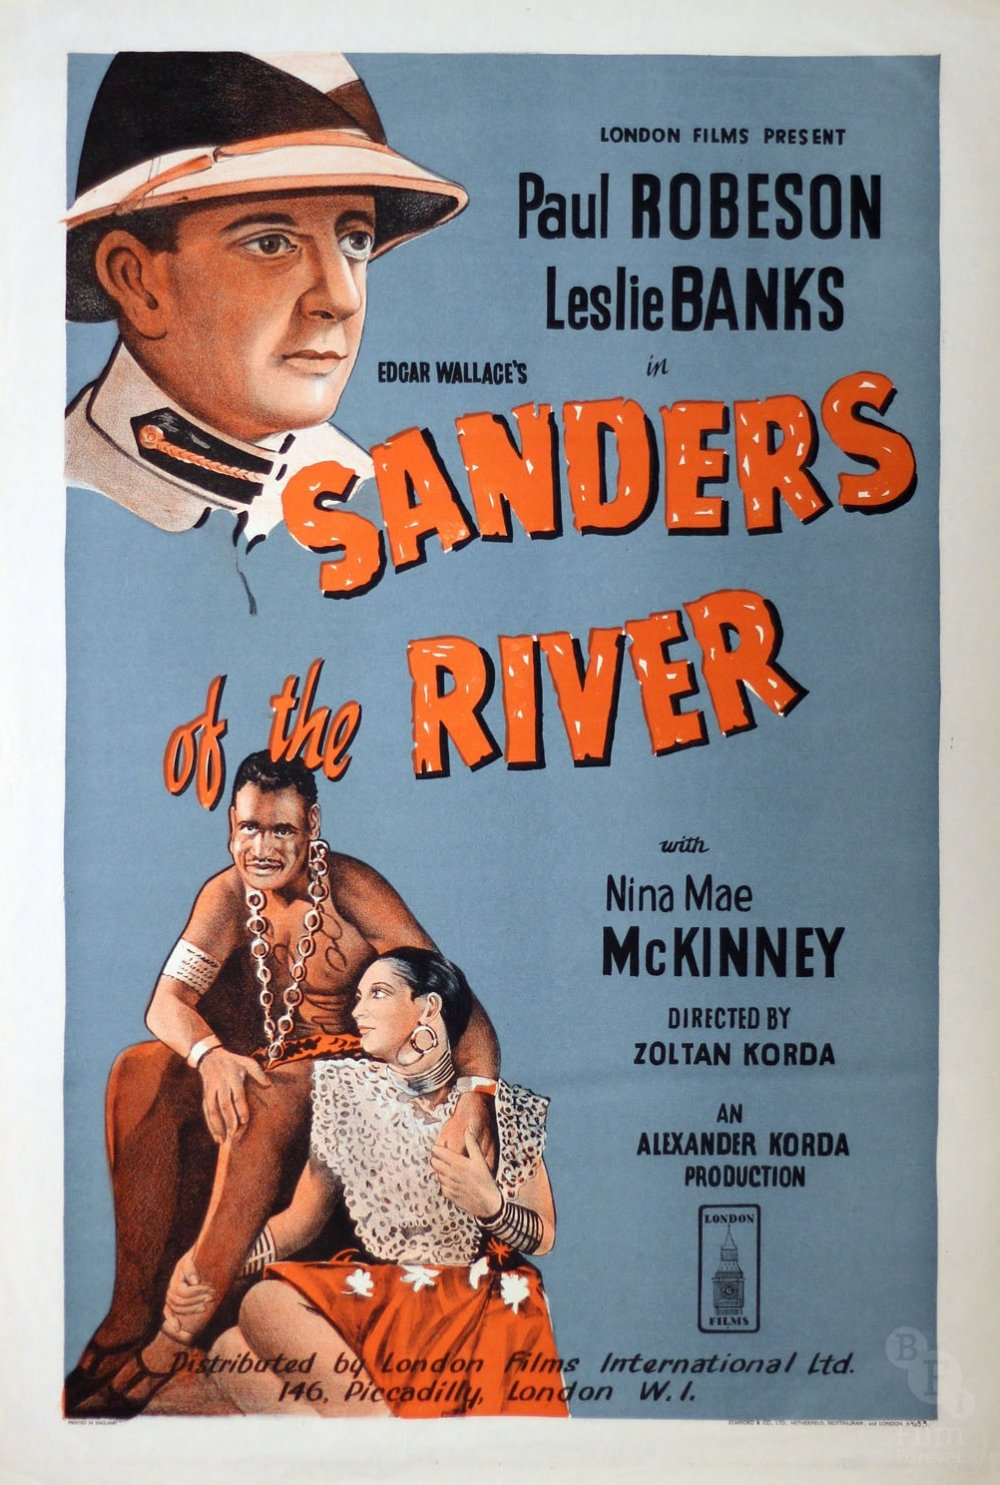 Sanders of the River (1935) poster